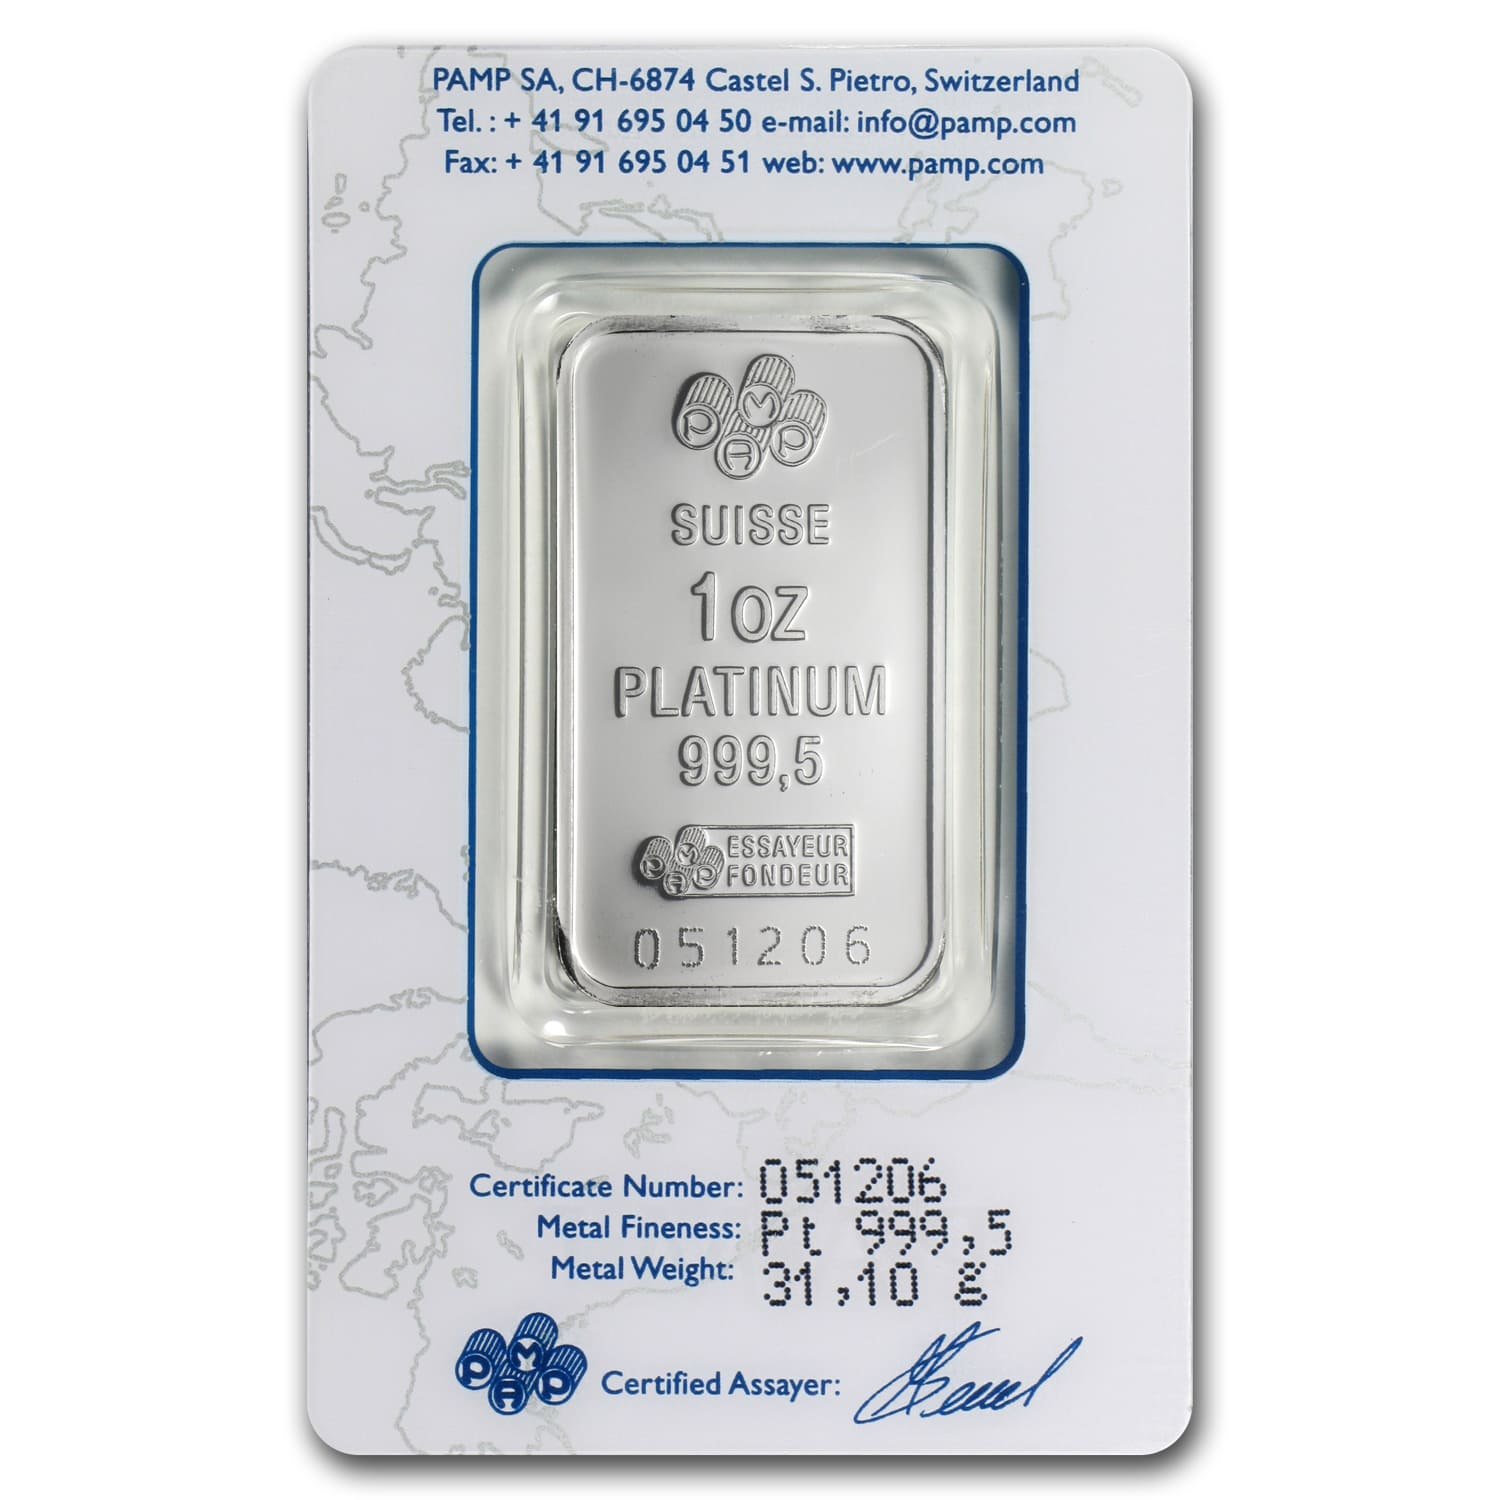 1 oz Platinum Bar - Pamp Suisse (Pre-Sale 2/12)